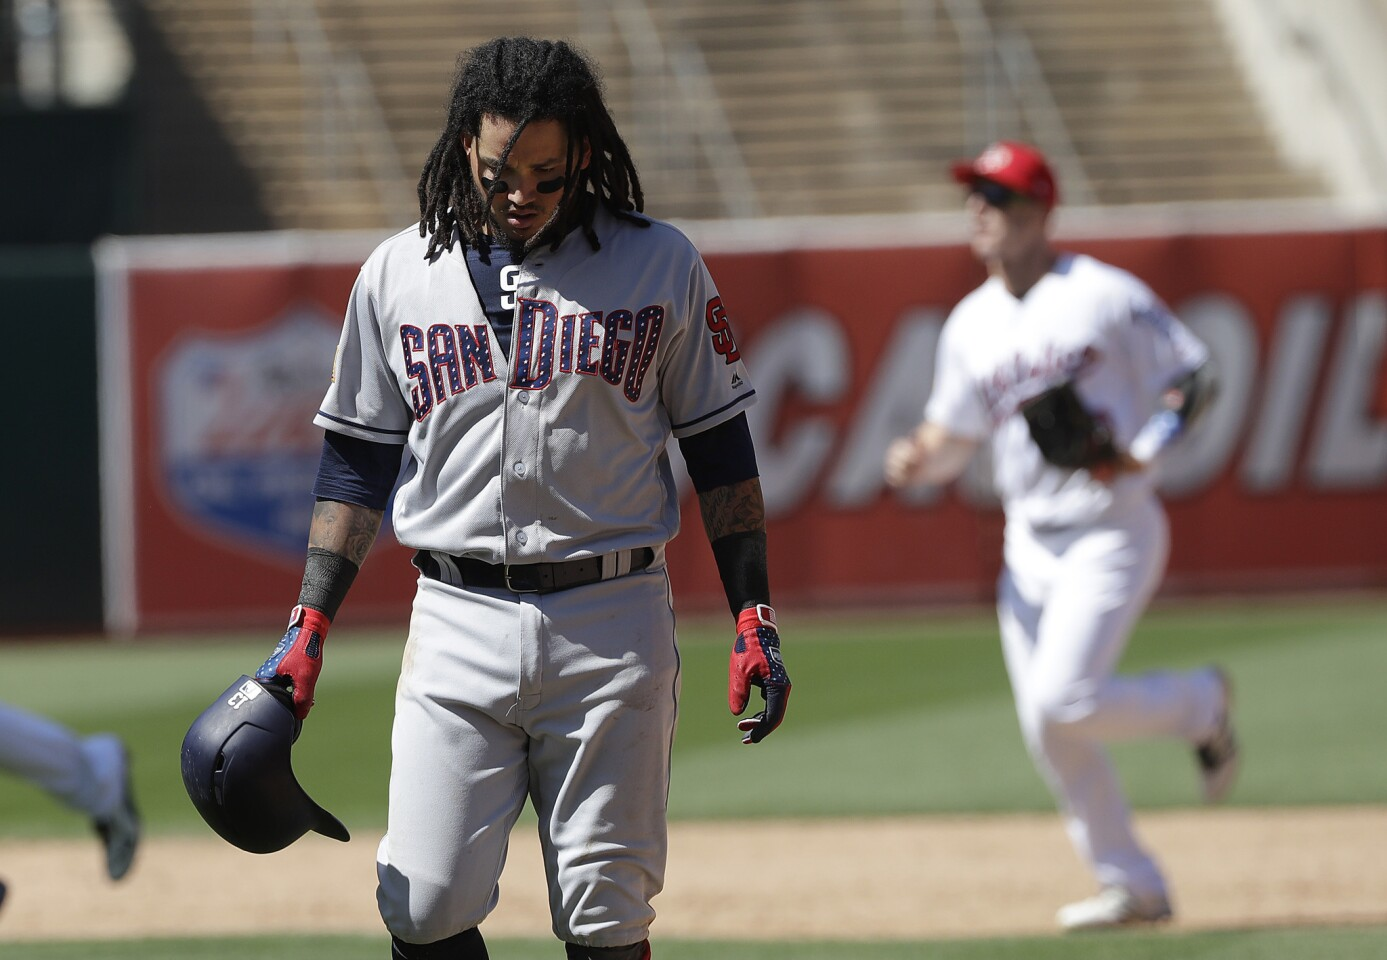 San Diego Padres' Freddy Galvis walks off the field after the team's baseball game against the Oakland Athletics in Oakland, Calif., Wednesday, July 4, 2018. The Athletics won 4-2. (AP Photo/Jeff Chiu)